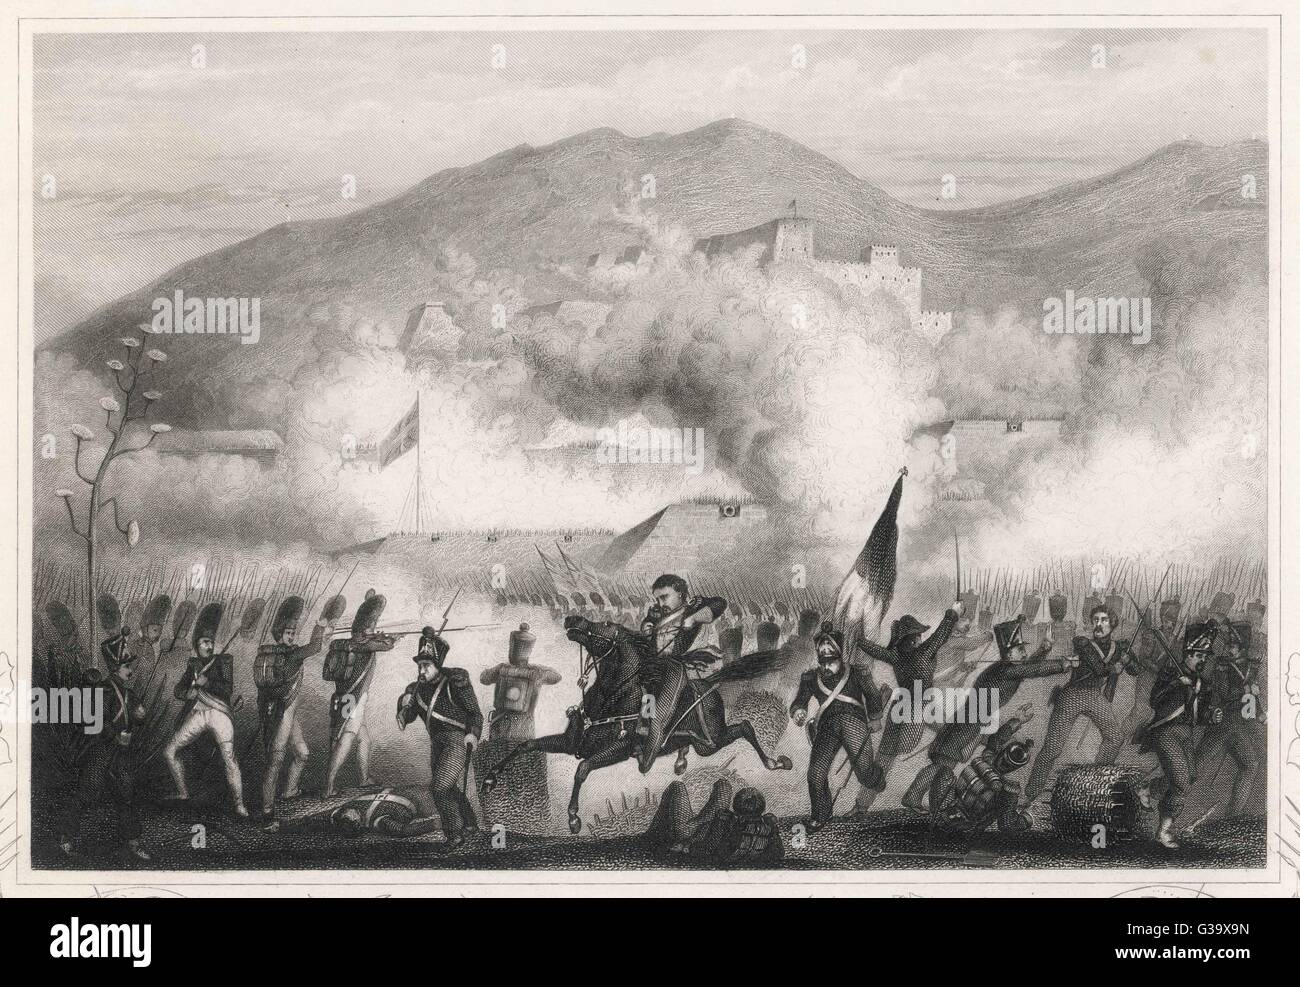 Wellington takes up a strong  position at TORRES VEDRAS, Portugal        Date: 10 October 1810 - Stock Image